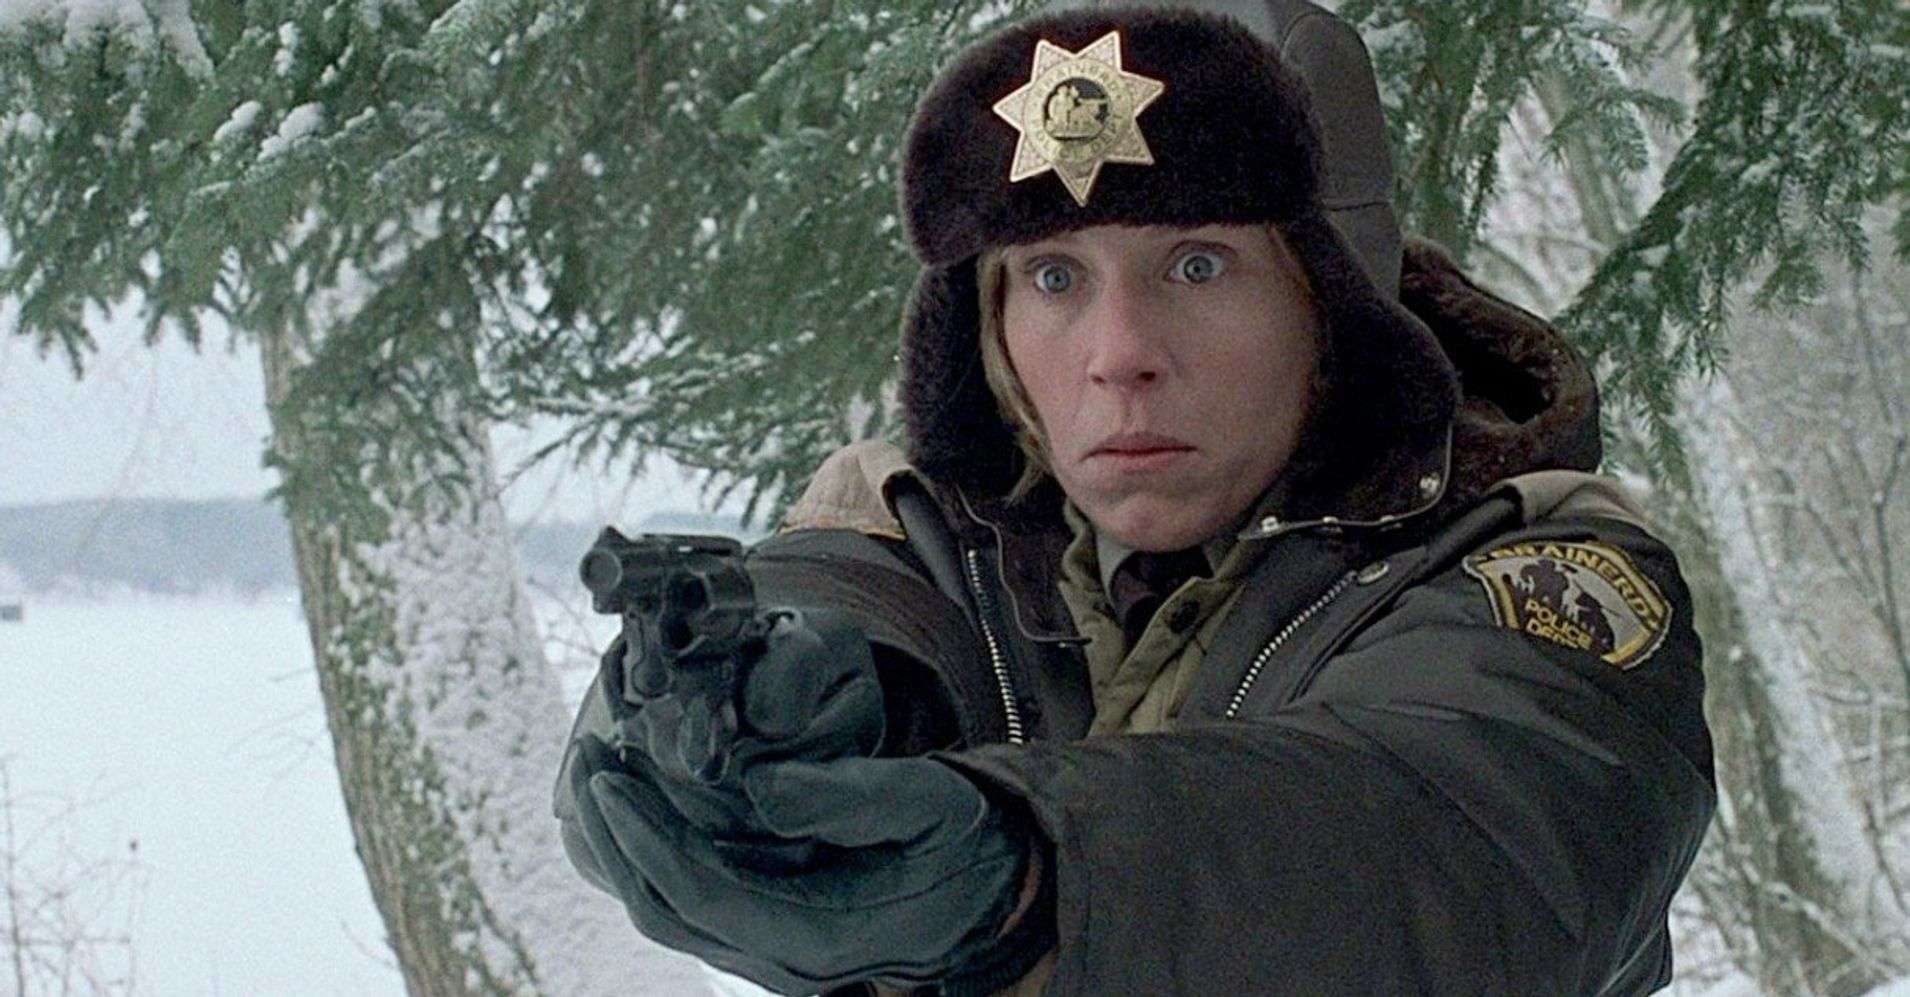 The Coen Brothers Reveal Fargo Is Based On A True Story After All